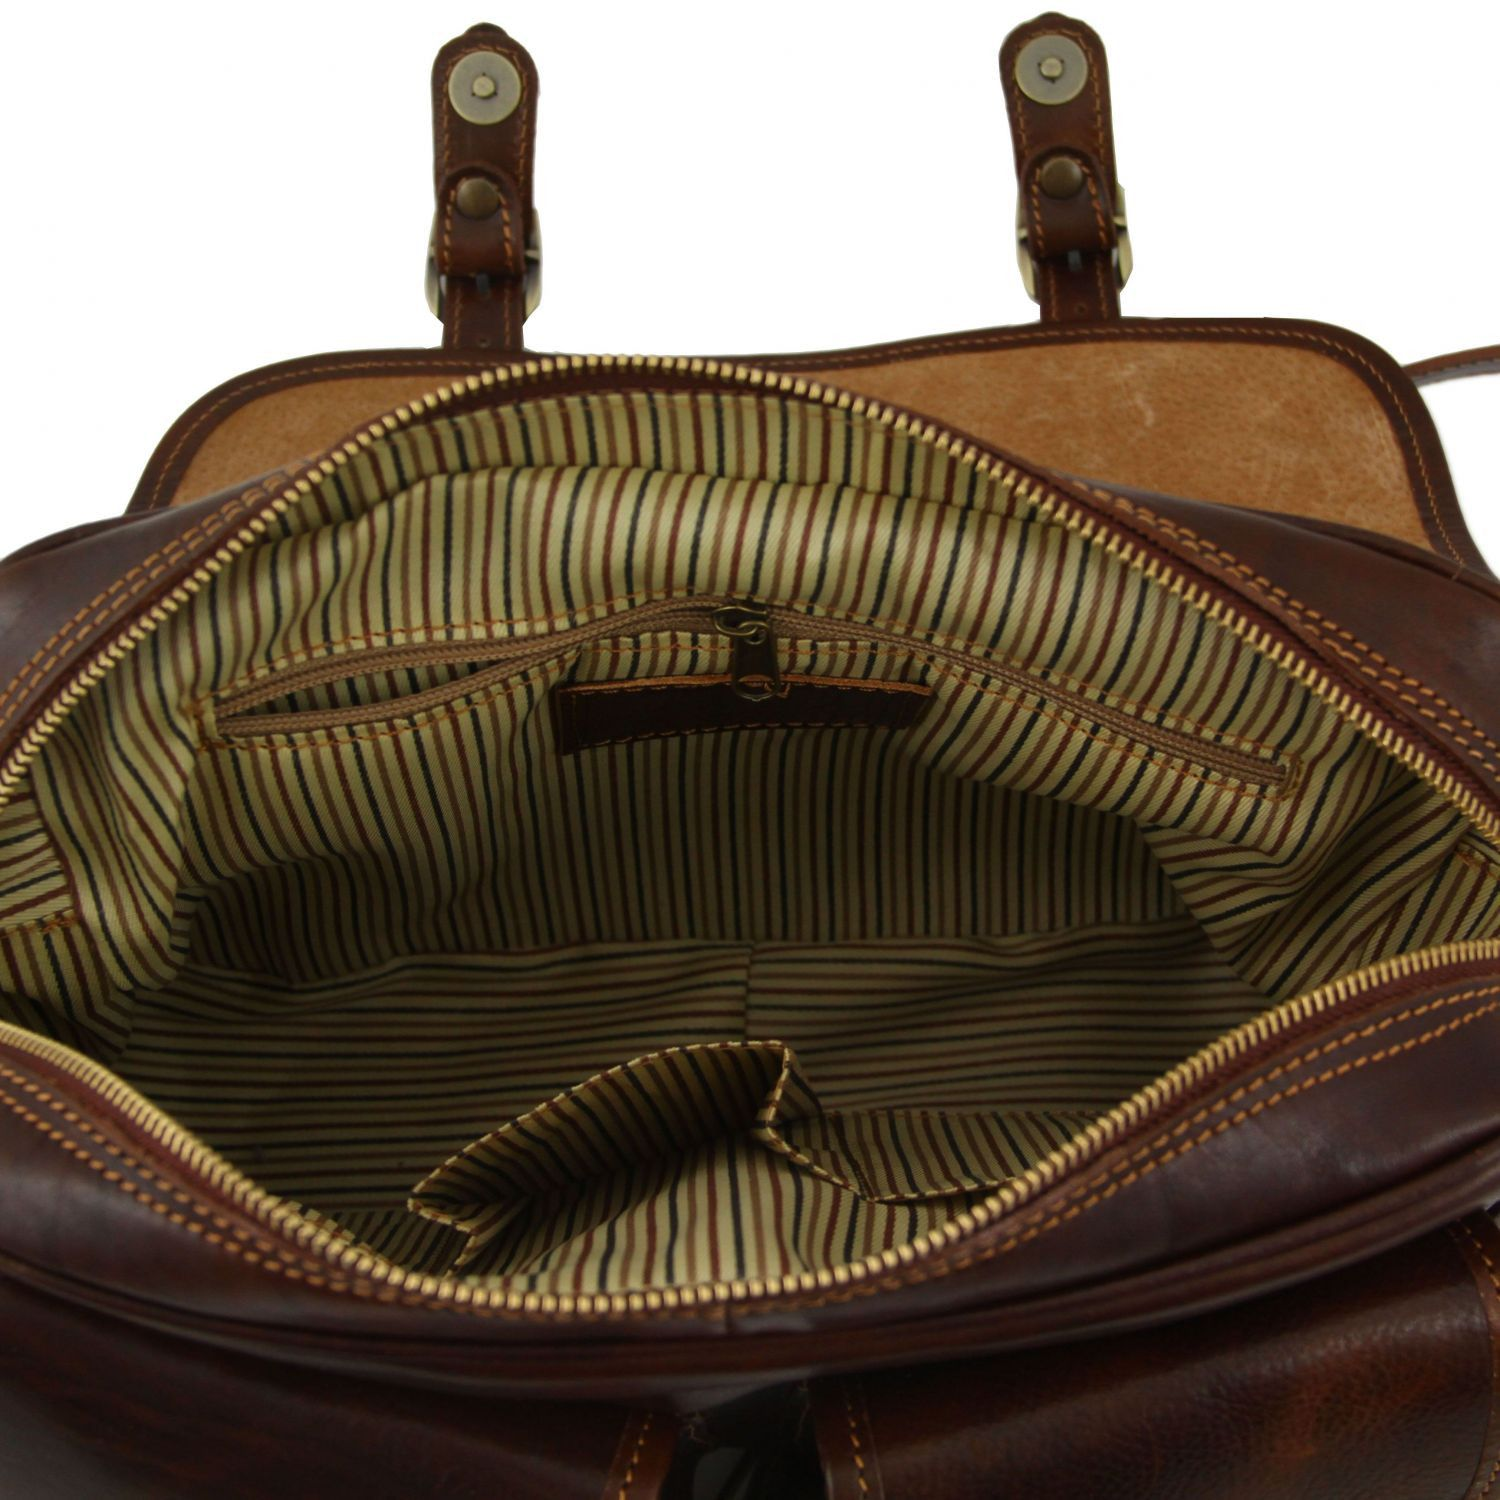 Tuscany Leather San Marino Sac de voyage en cuir avec poches frontales Marron J2KyLH46